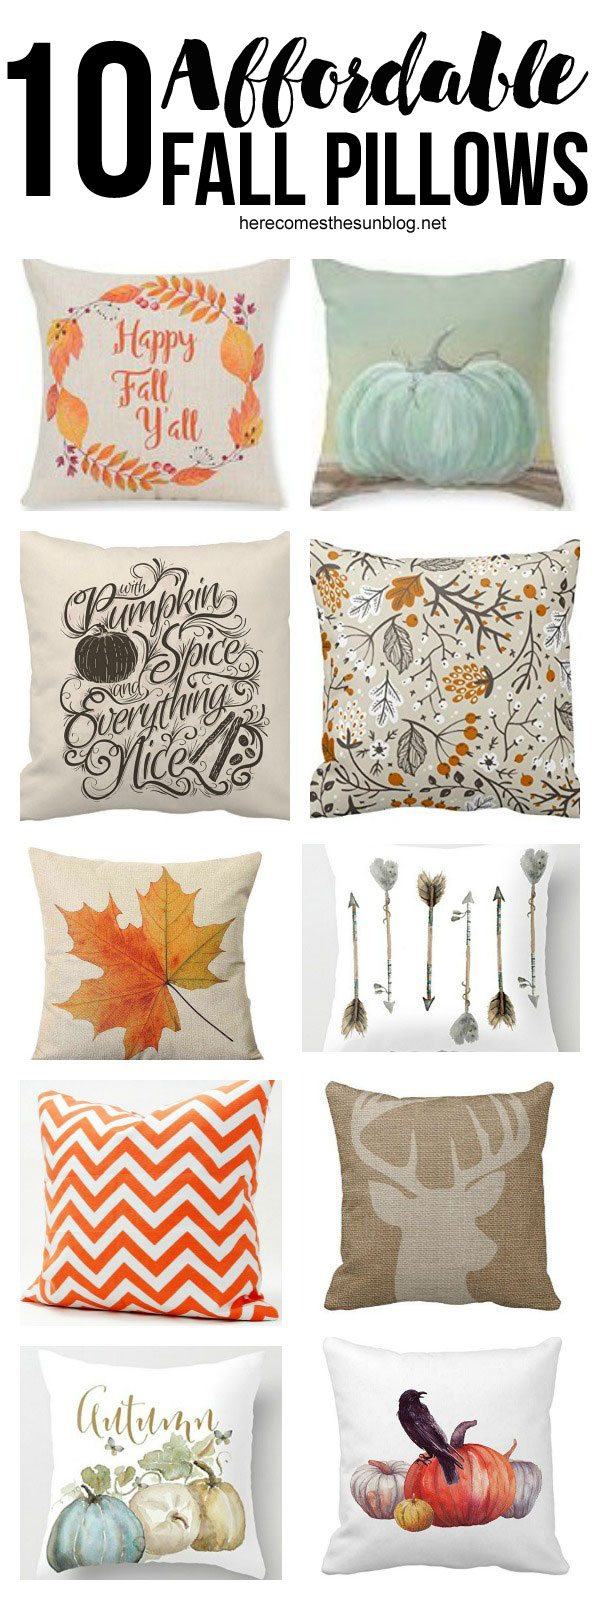 All of these beautiful Fall pillows are under $15! An amazing list of pillow decor from Here Comes the Sun